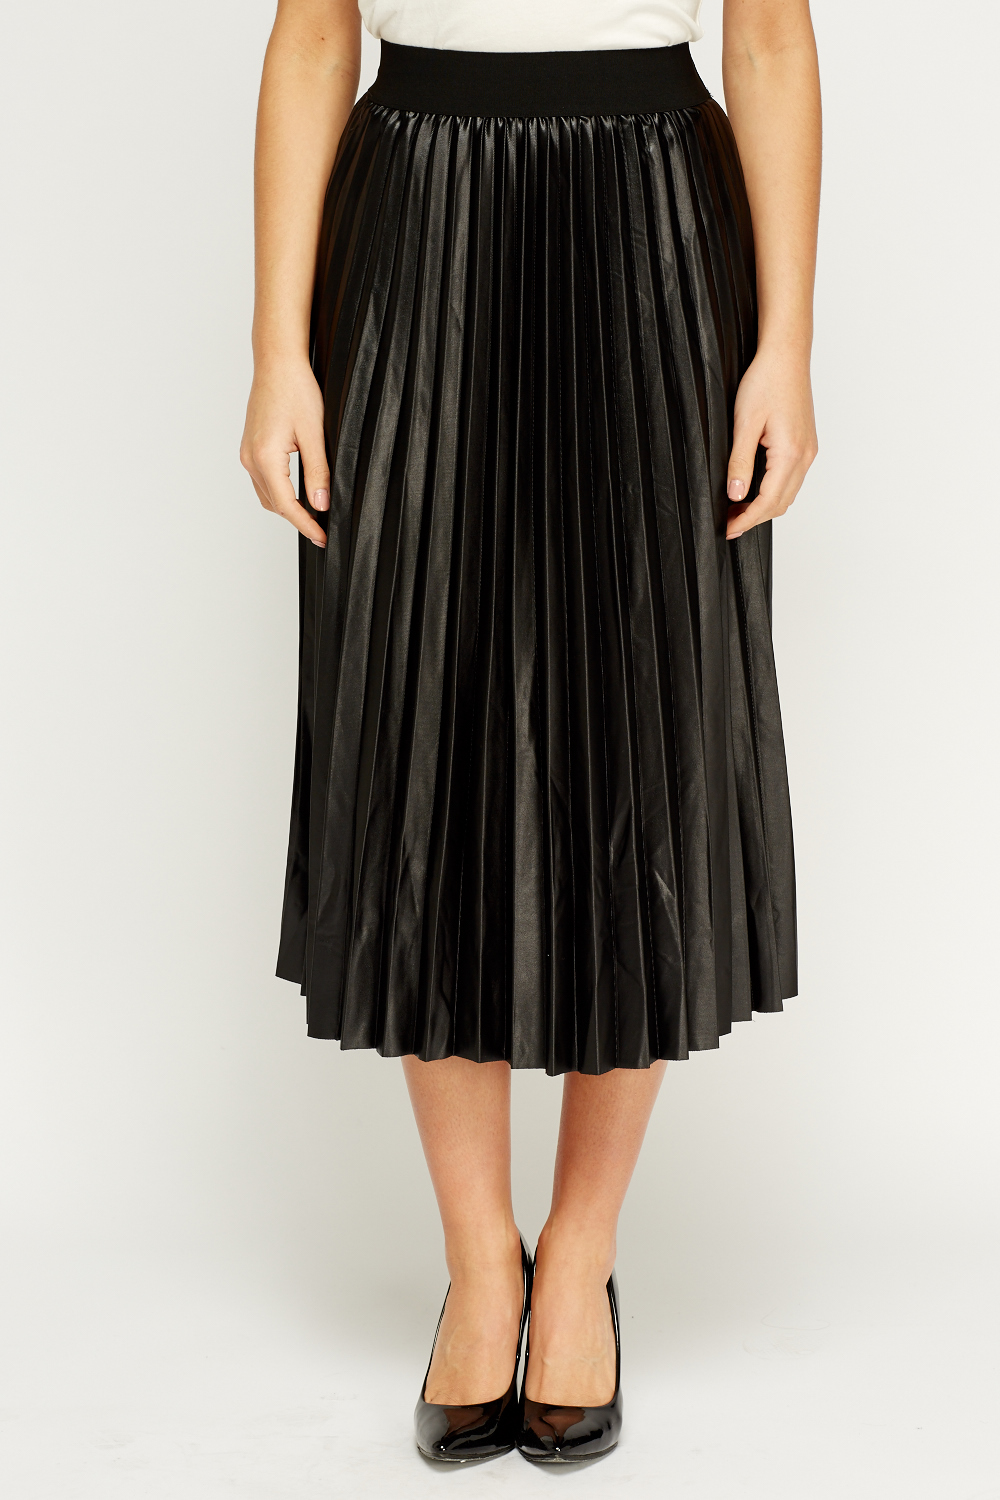 High waisted, and elastic waistband at both side. High waisted. The bright tone design has a gorgeous sheen to it and finishes at a ladylike, midi length for retro flair. Get way ahead of the fashion curve with our luxe faux leather pleated midi skirt. | eBay!